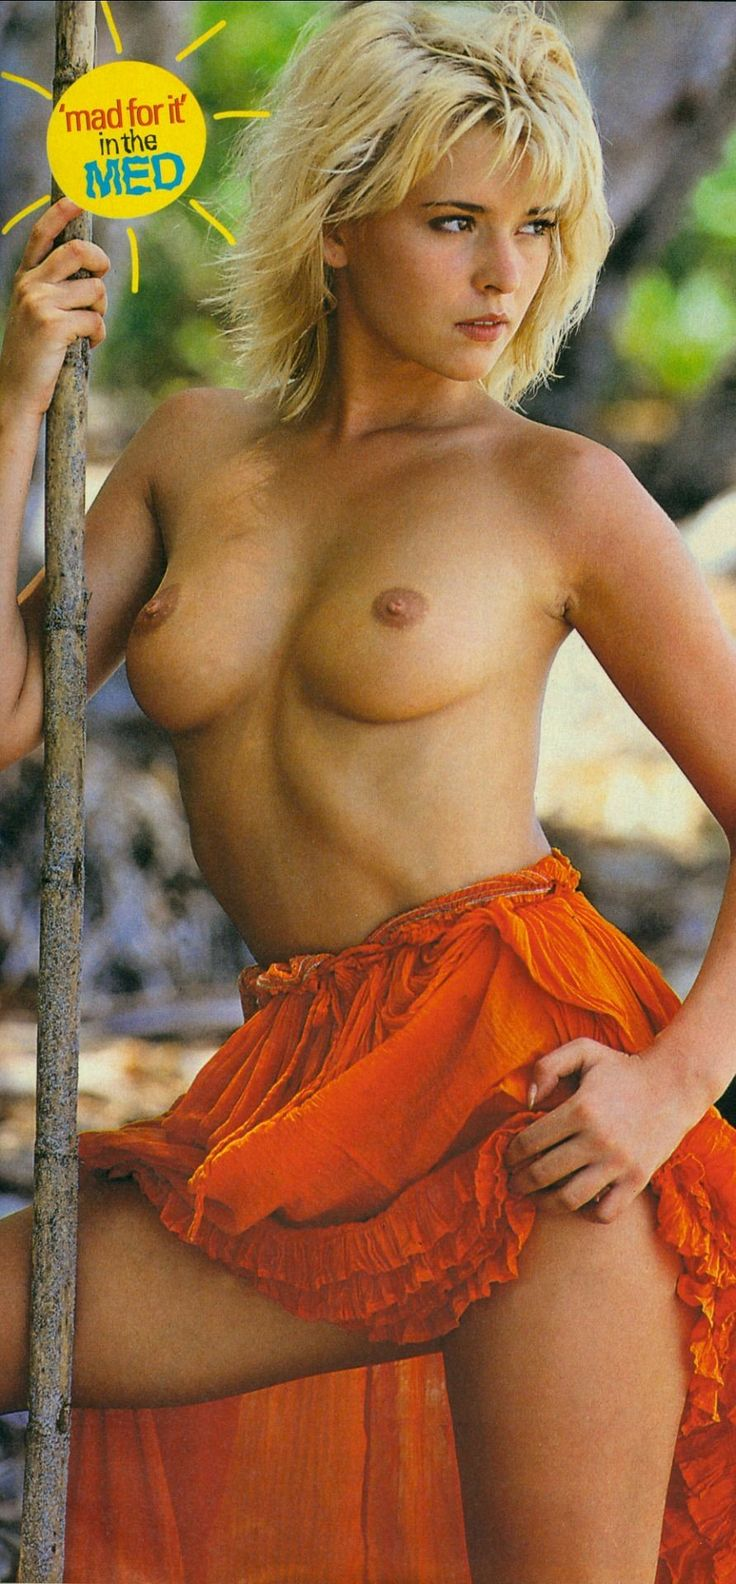 139 best topless images on pinterest | beautiful women, boobs and breast